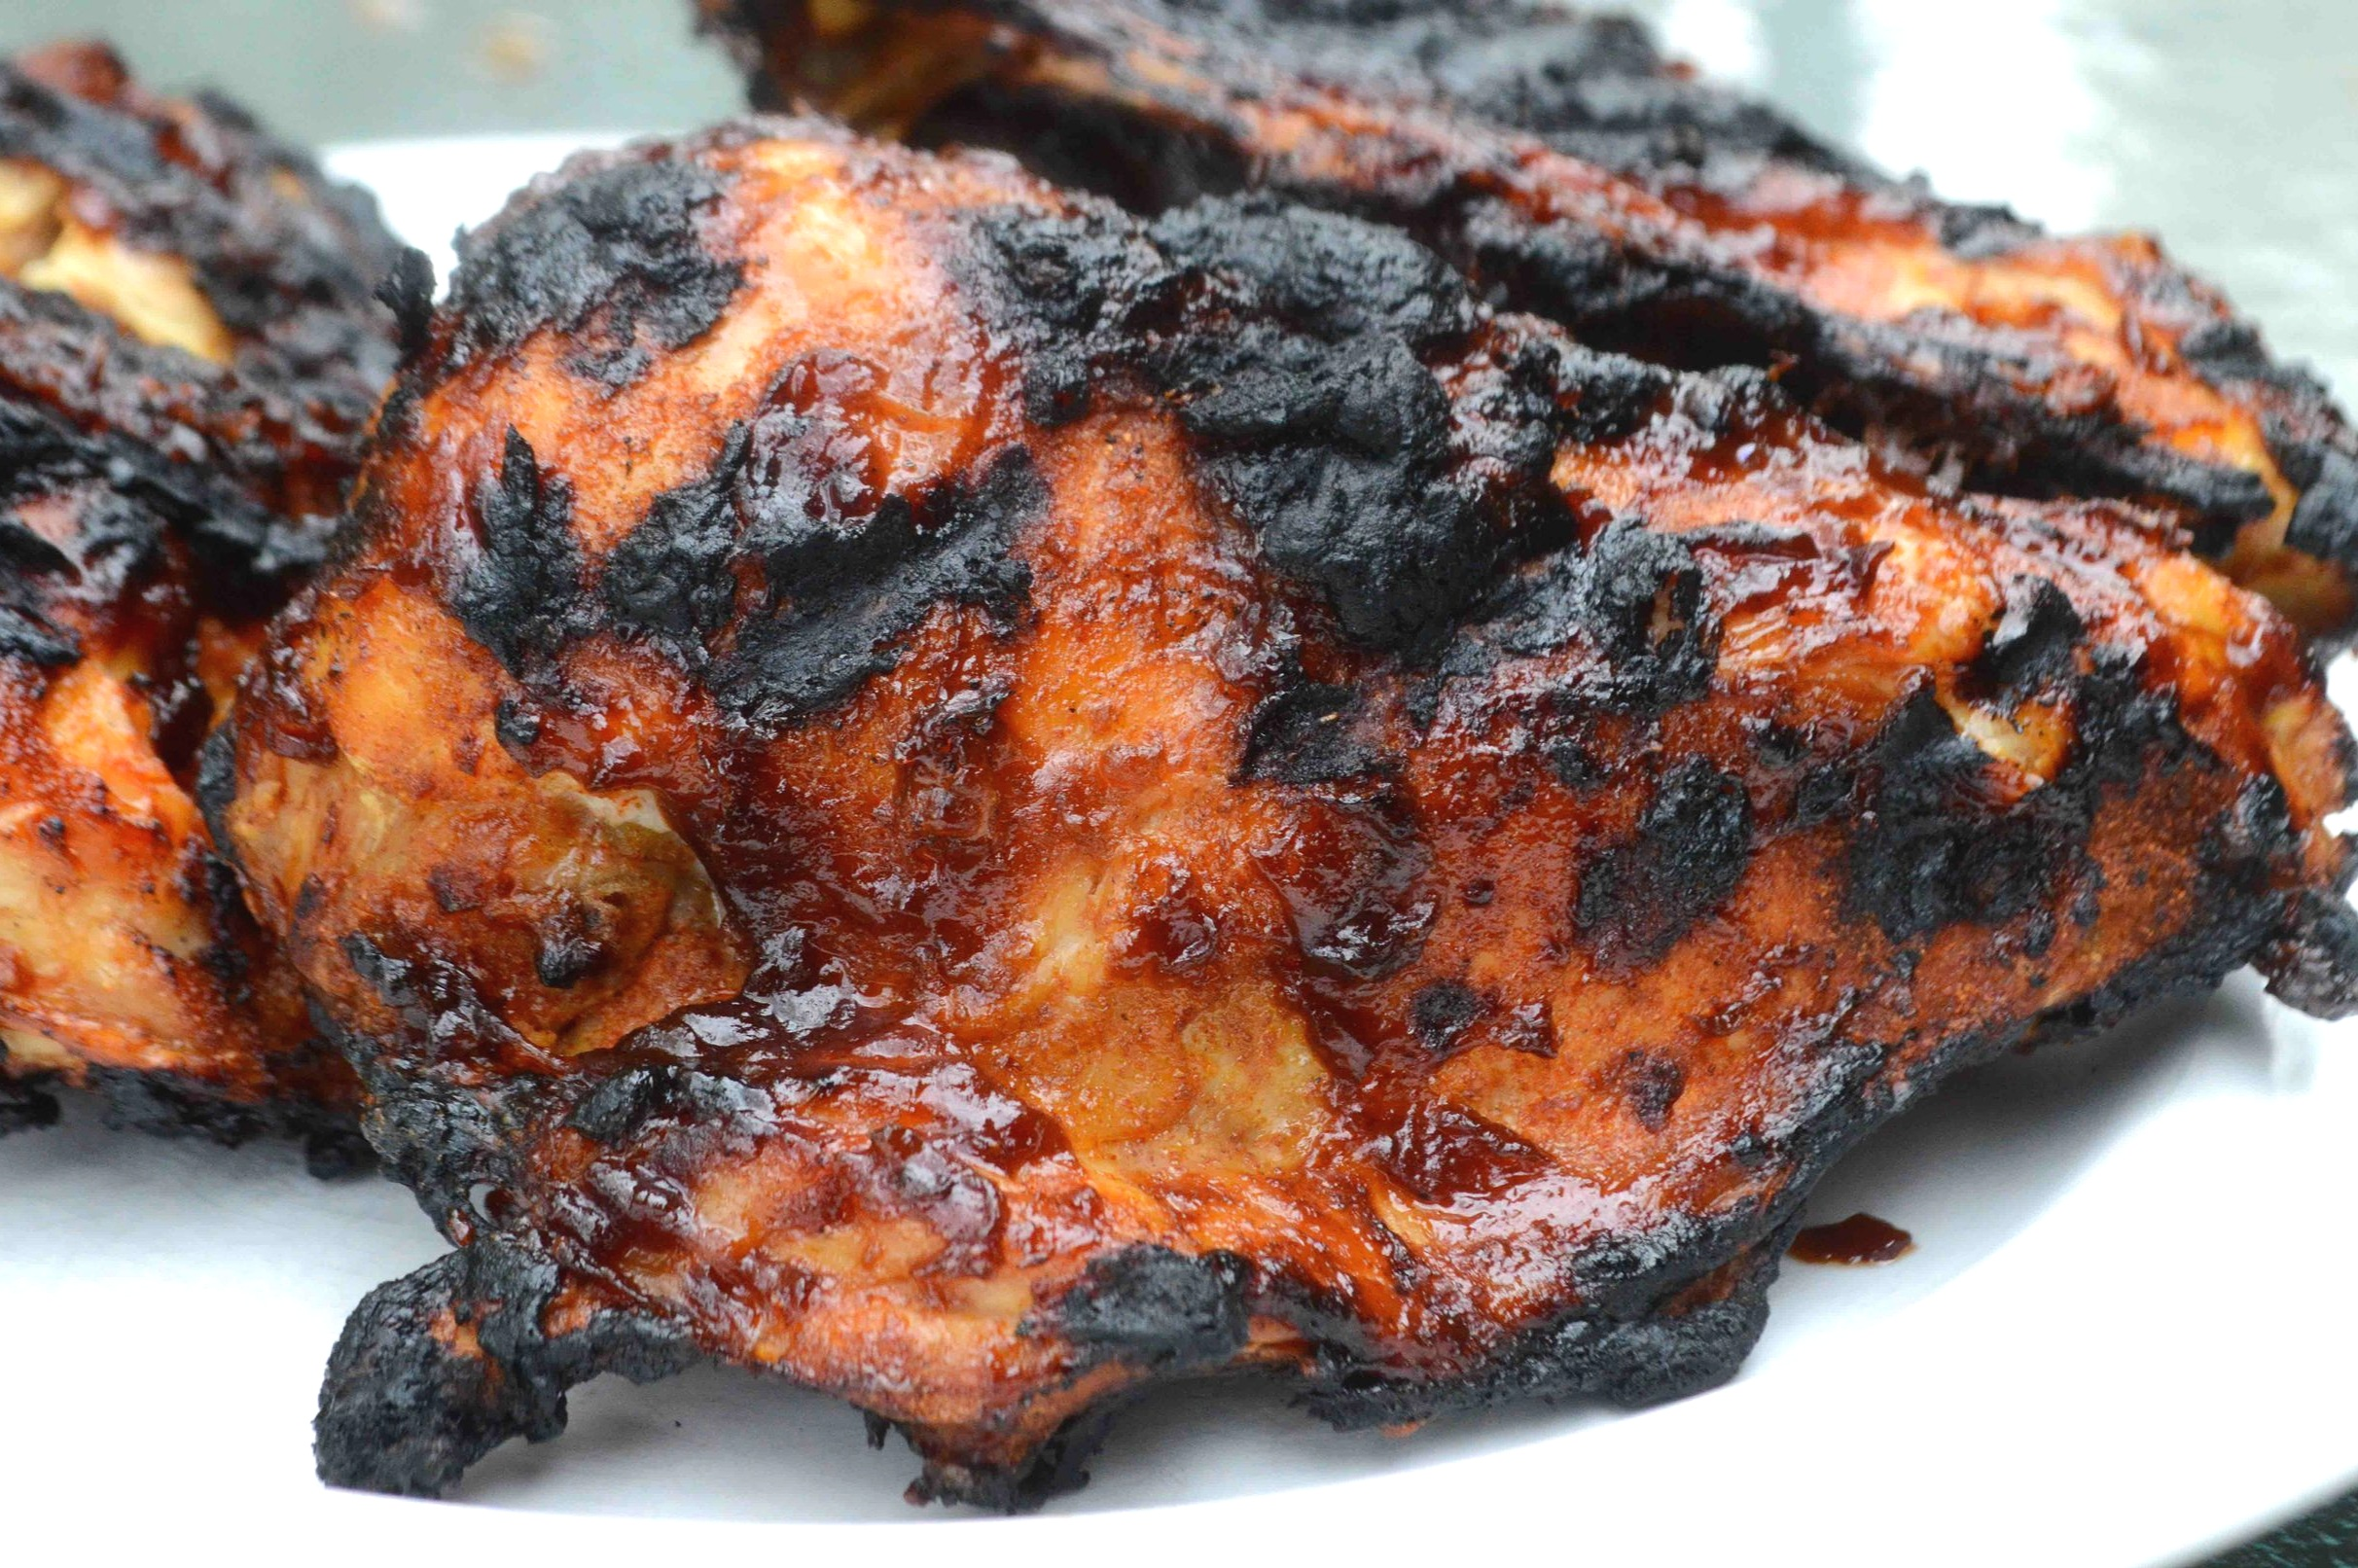 Barbecued+Chicken+with+Homemade+BBQ+sauce